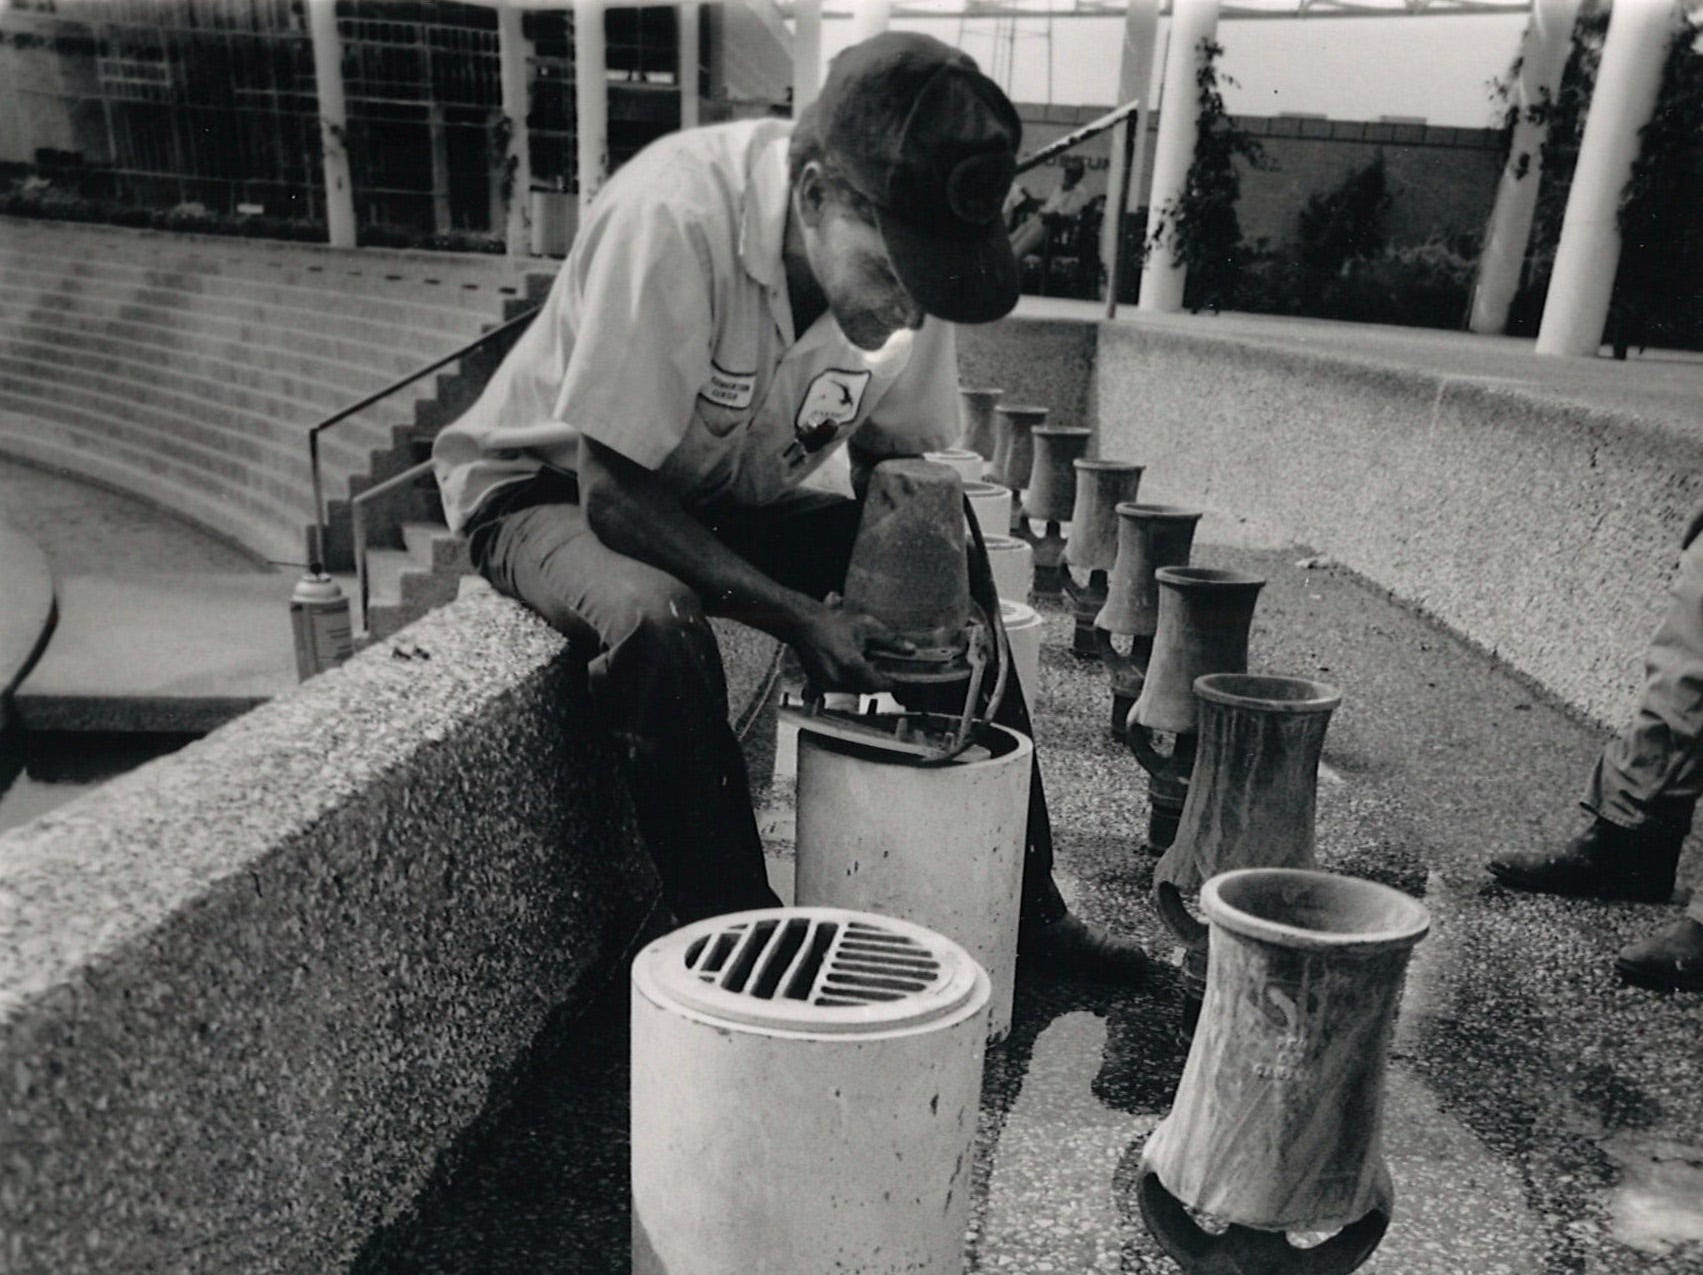 Alex Ronje, employee with the Bayfront Plaza Convention Center maintenance department, replaces one of the burnt-out bulbs in the lights that illuminate the Corpus Christi Watergarden in October 1989.